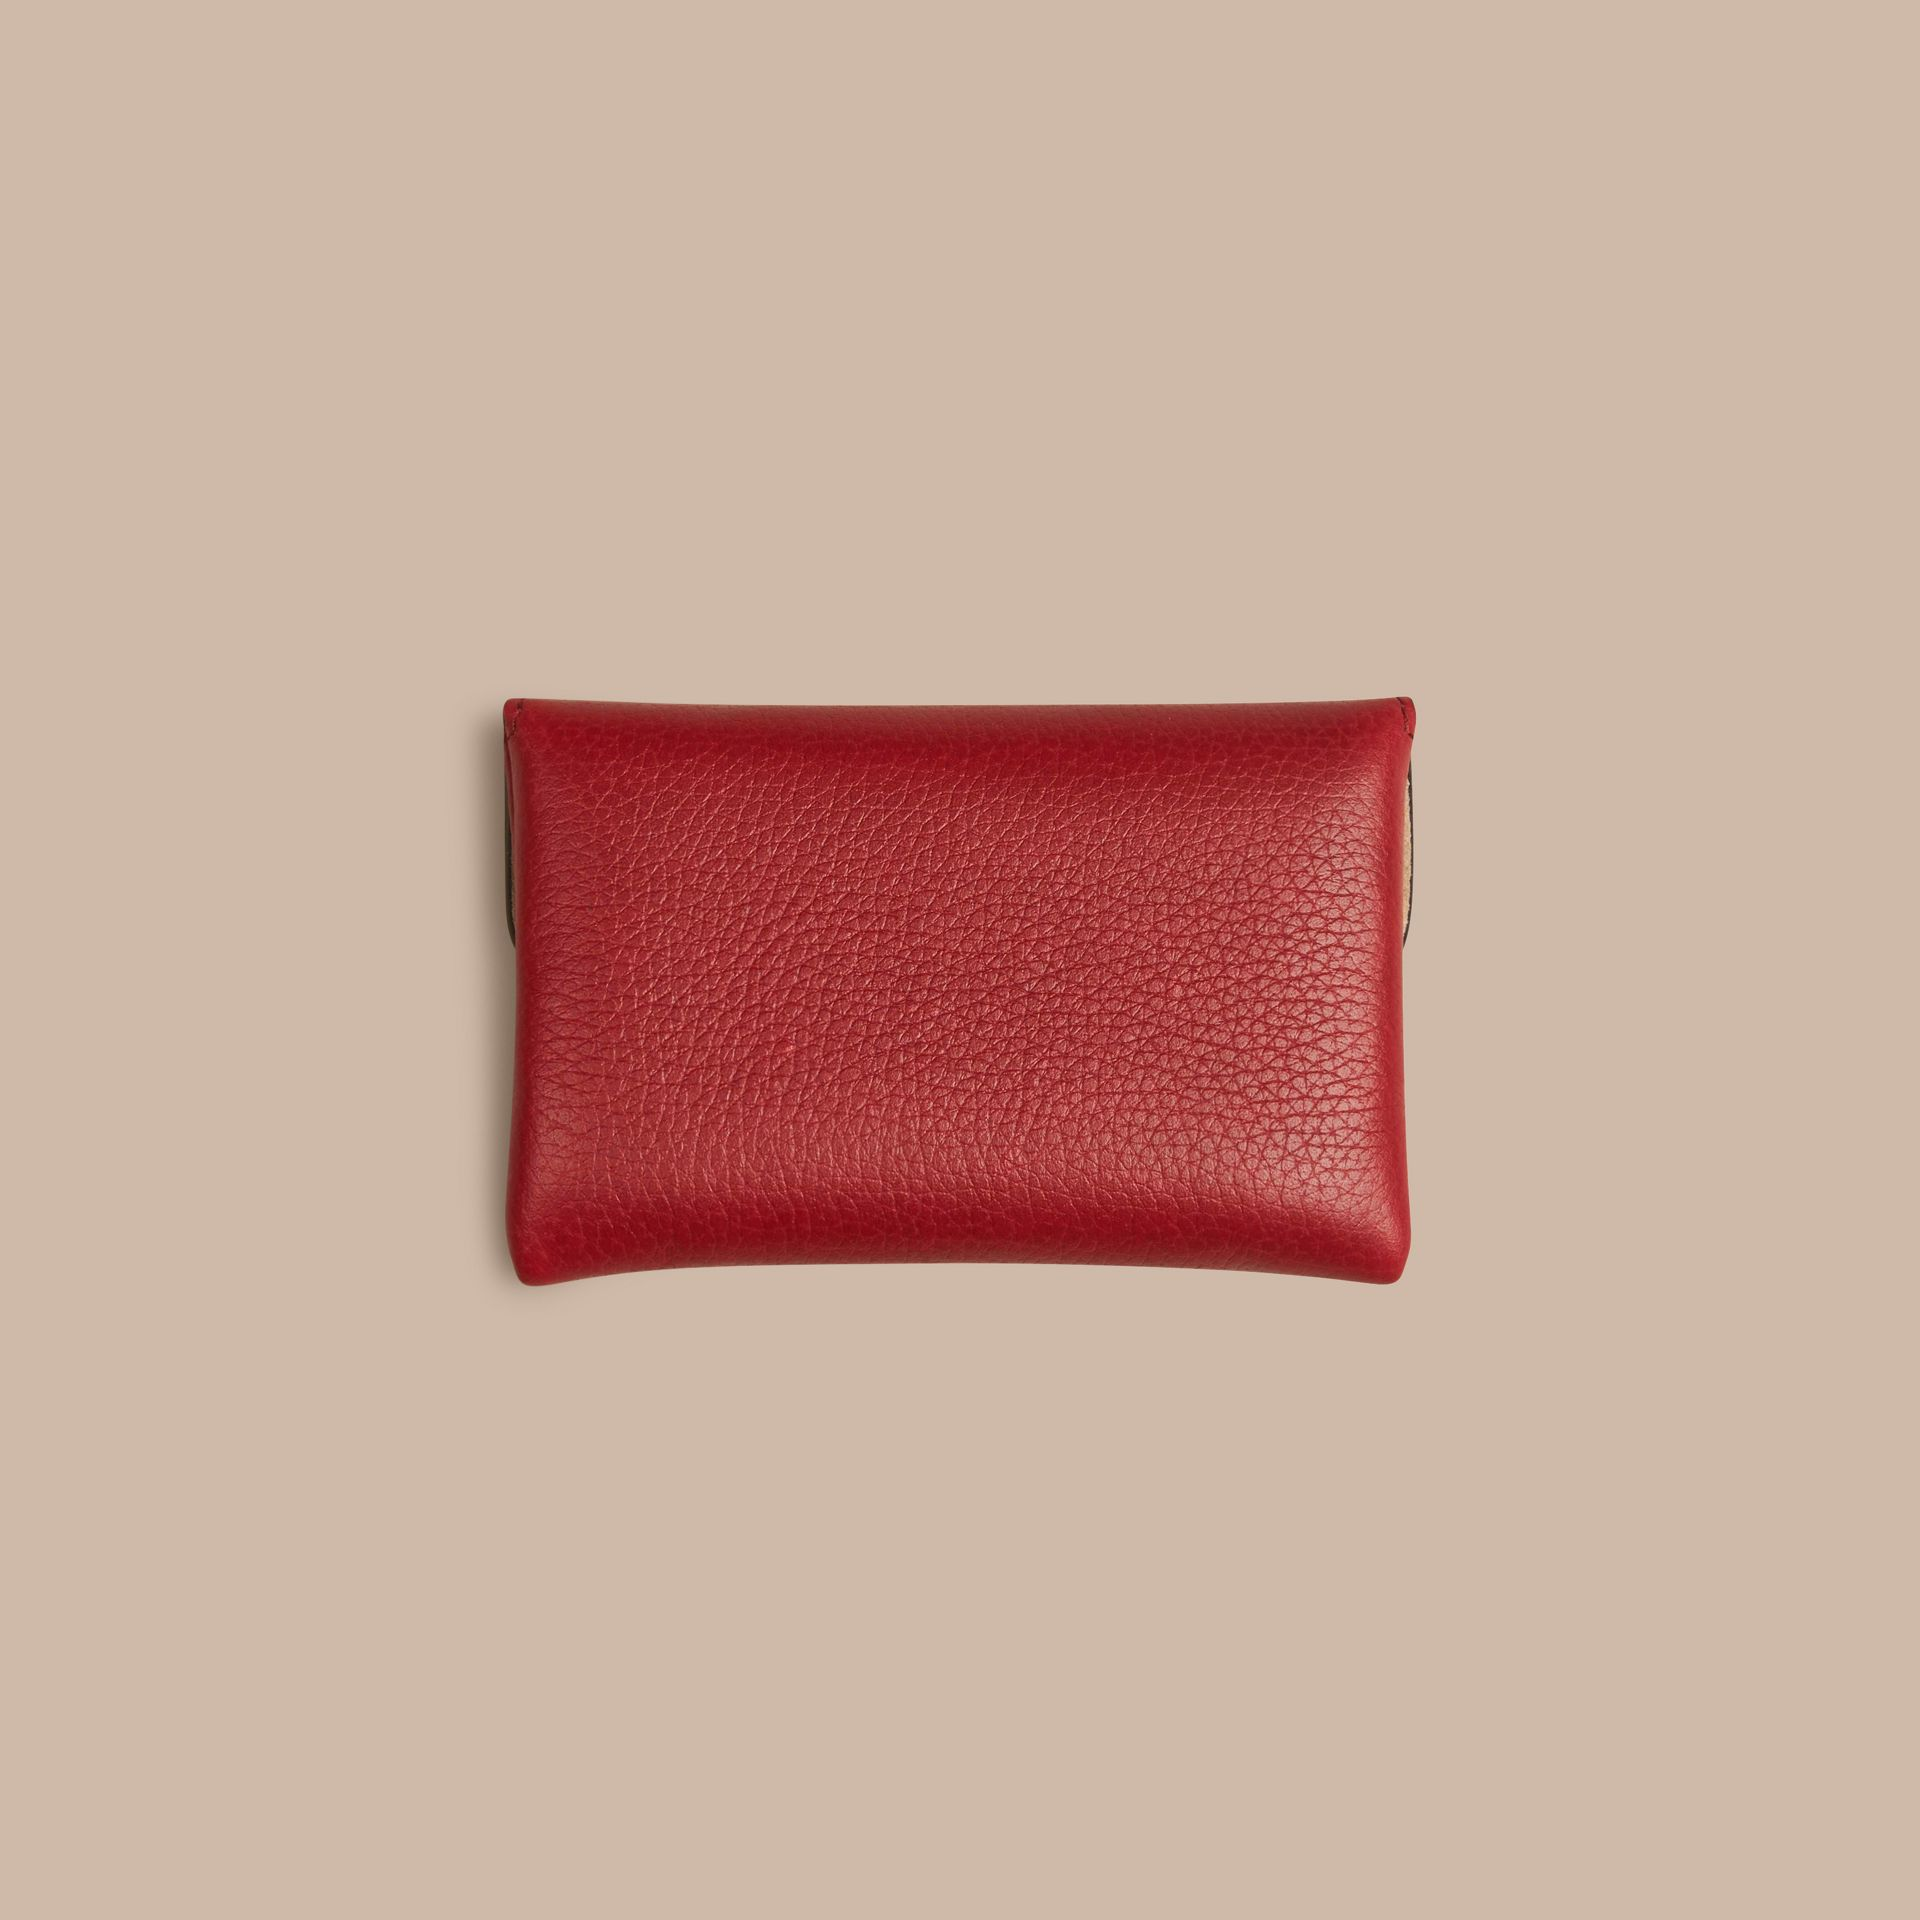 Grainy Leather Playing Card Case in Parade Red | Burberry Singapore - gallery image 4